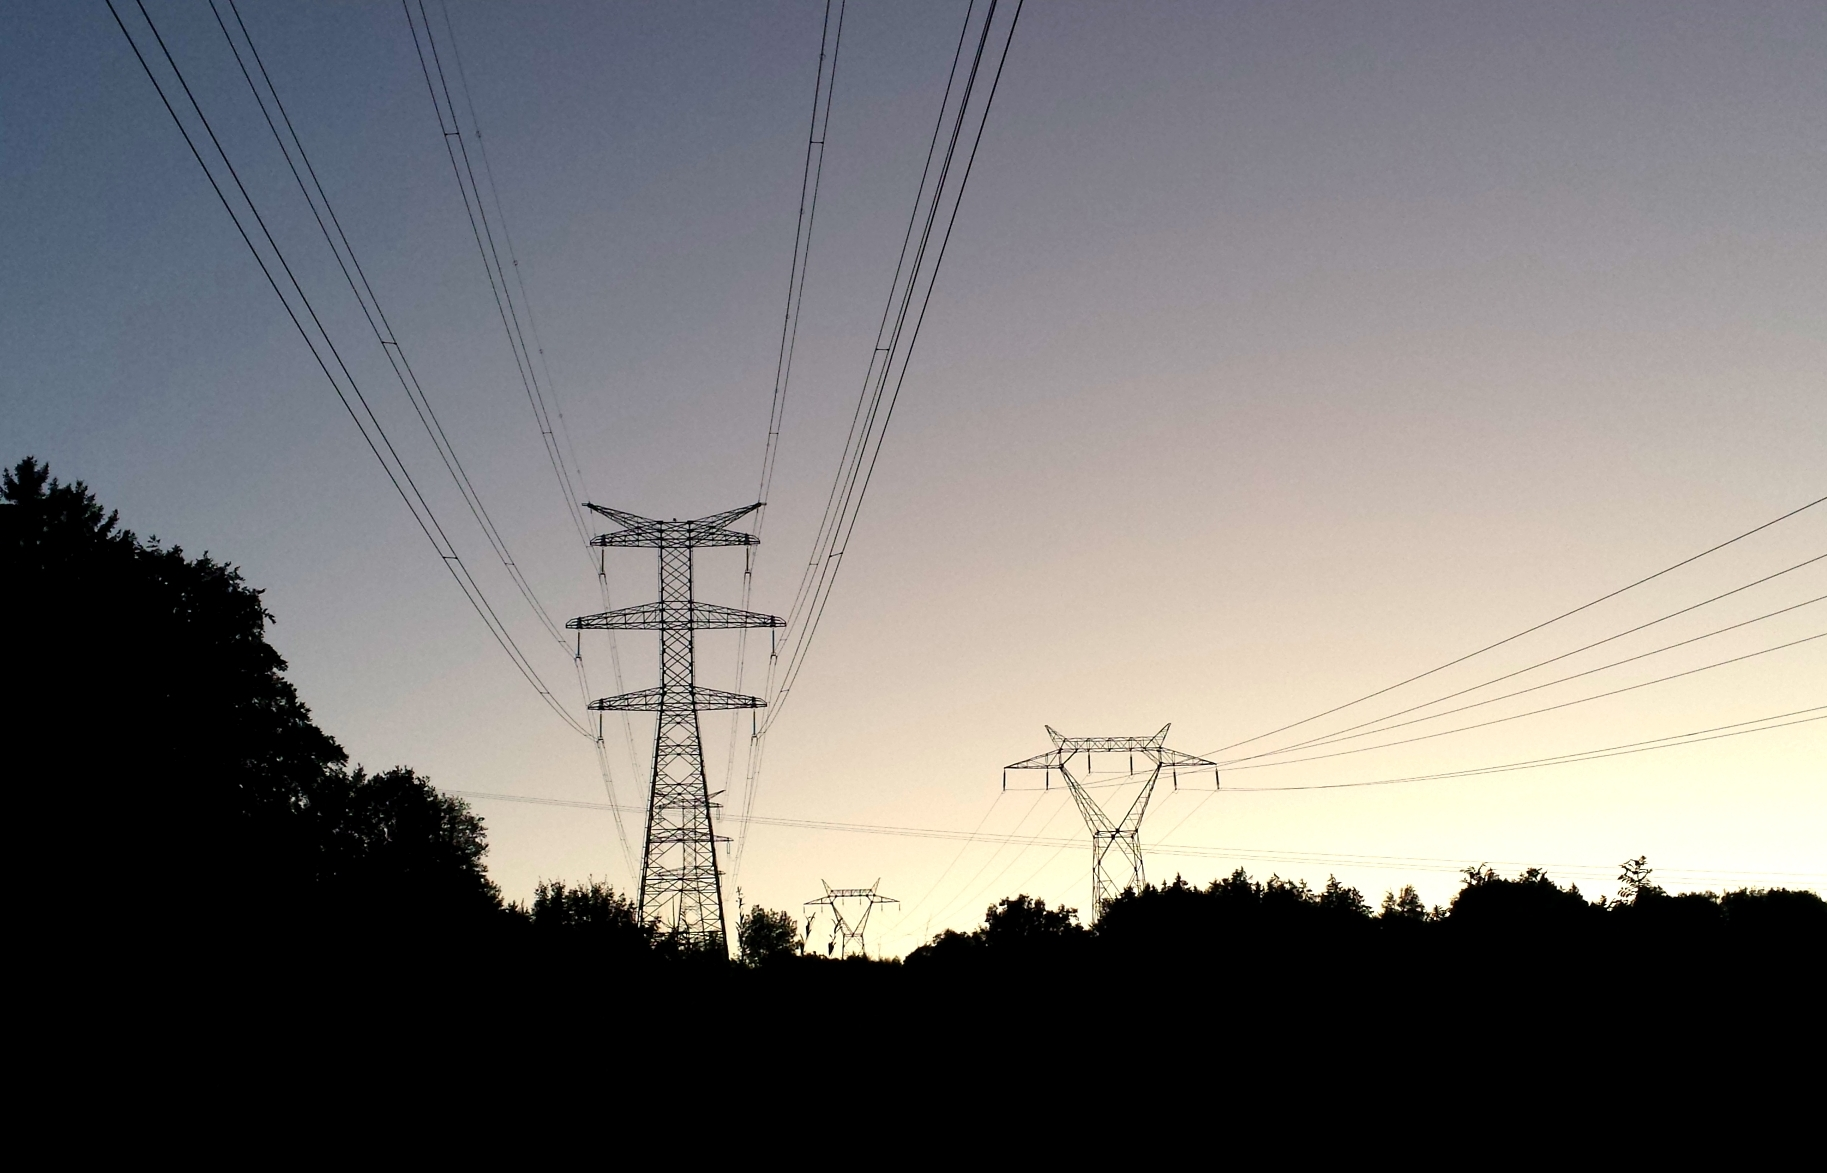 Double circuits power lines